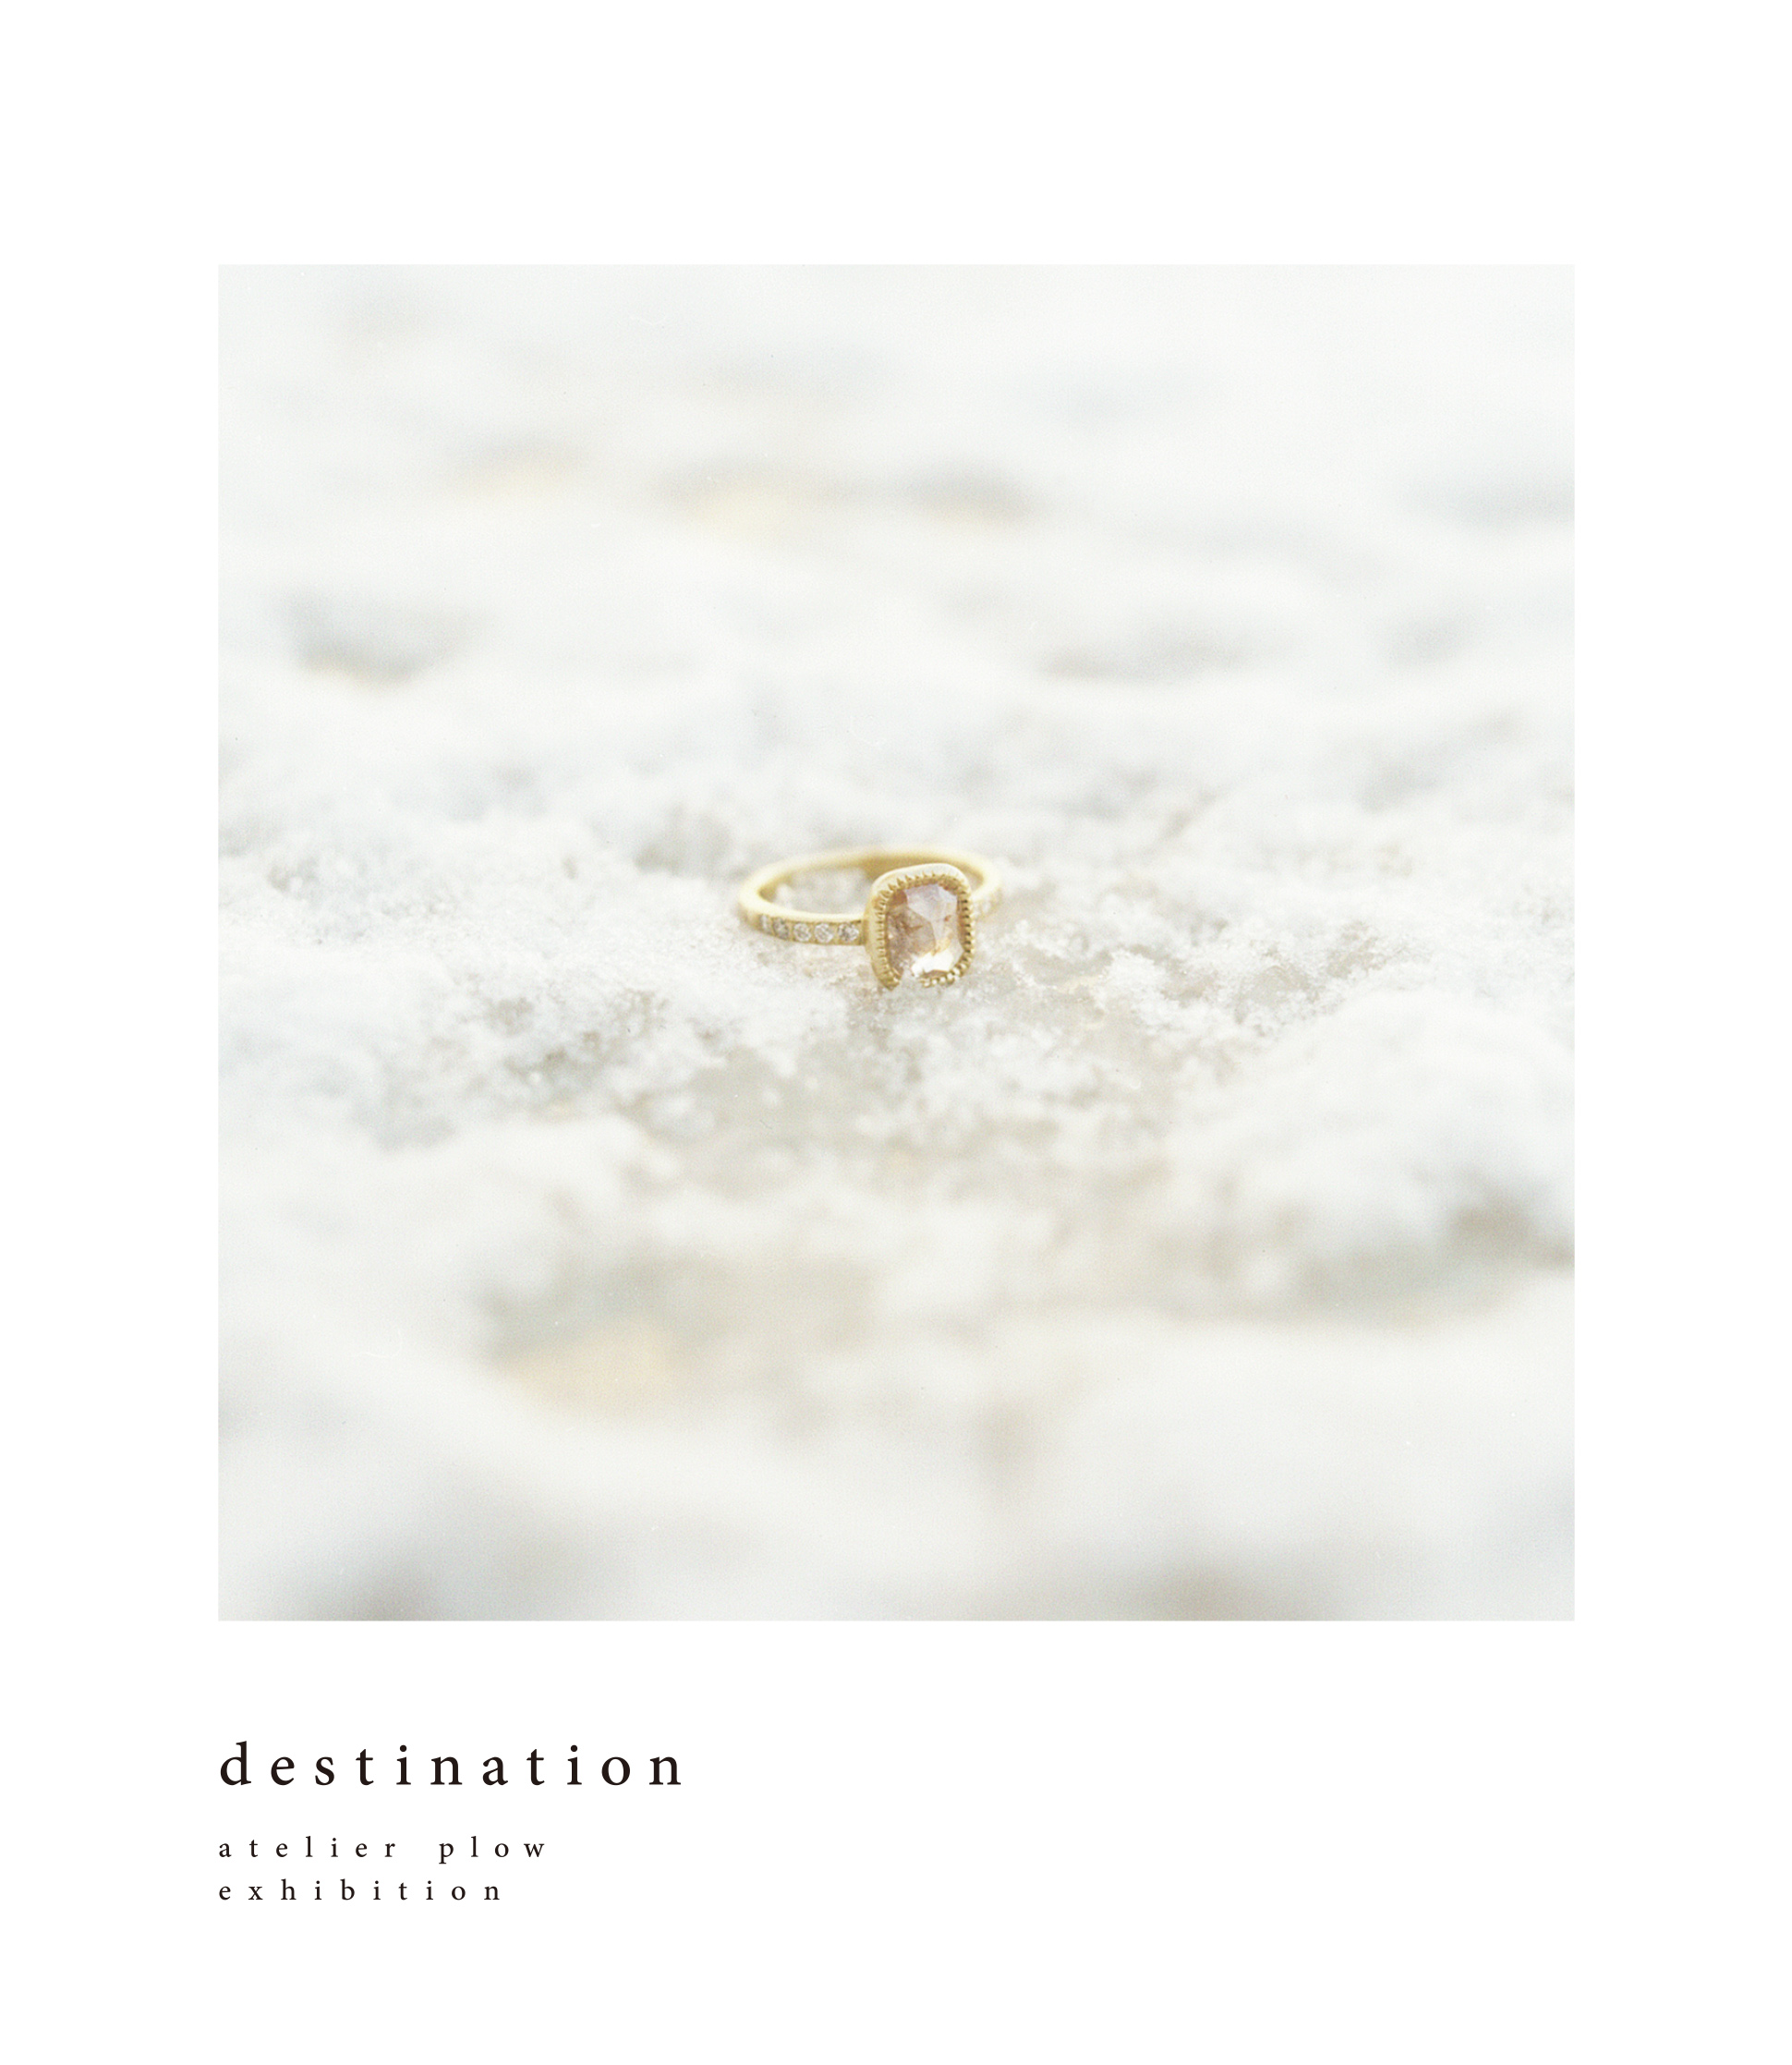 destination / atelier plow exhibition